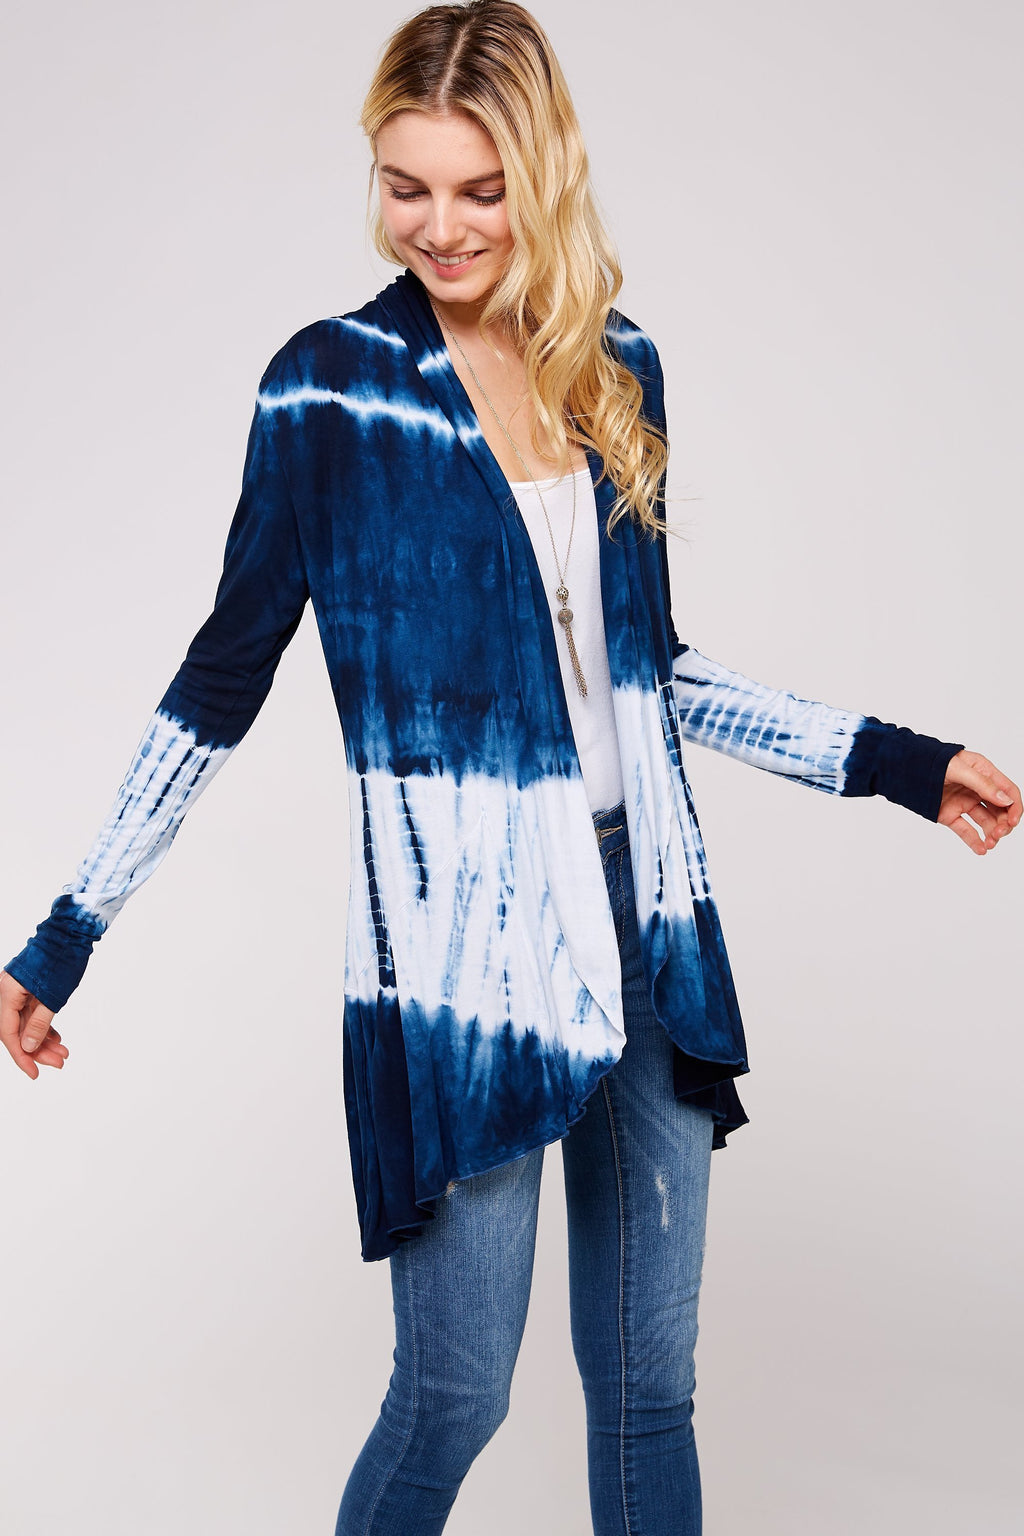 Wholesale Clothing, Online Wholesale Clothing, Women Clothing, Bohemian, Free People, tiedye, specialty wash, wholesale seller, wholesale women clothing shop, gypsy look, USA made, URBAN X PLUS-PLUS-UCR3004D, fashiontrend2019